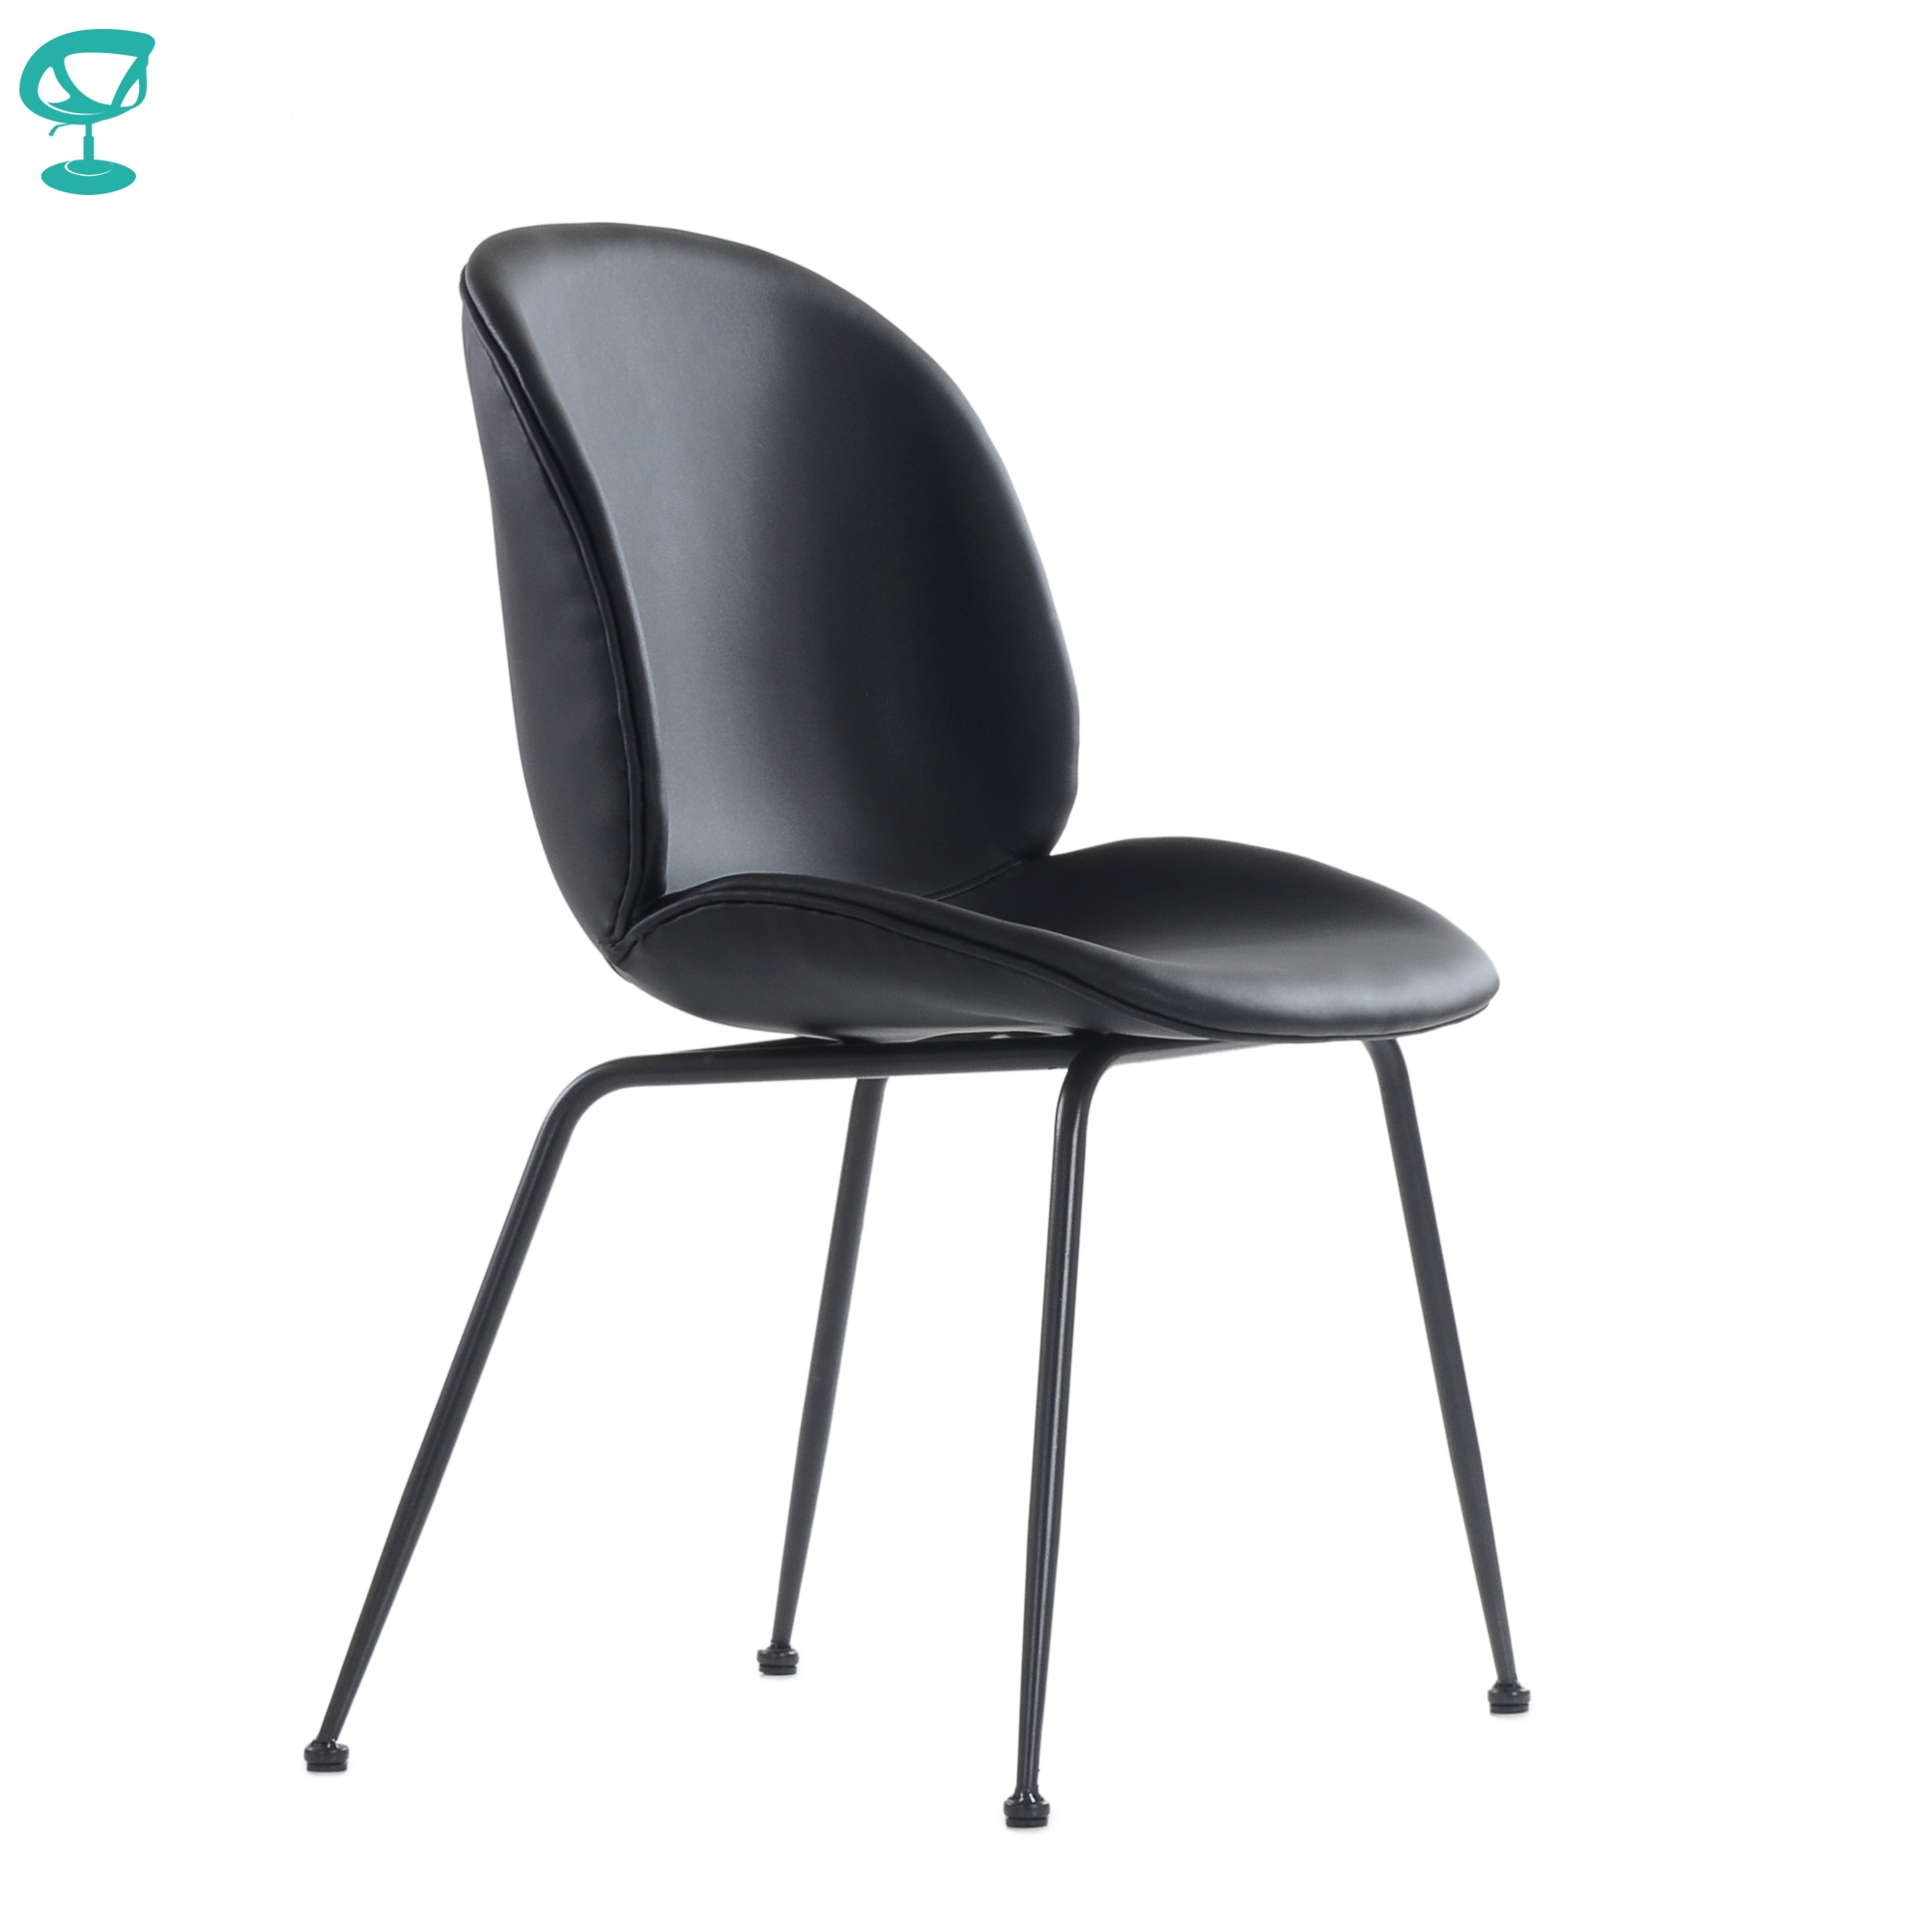 95743 Barneo S-17 Kitchen Chair On Metal Legs Seat Eco-friendly Leather Chair For Living Room Chair Dining Chair Furniture Kitchen